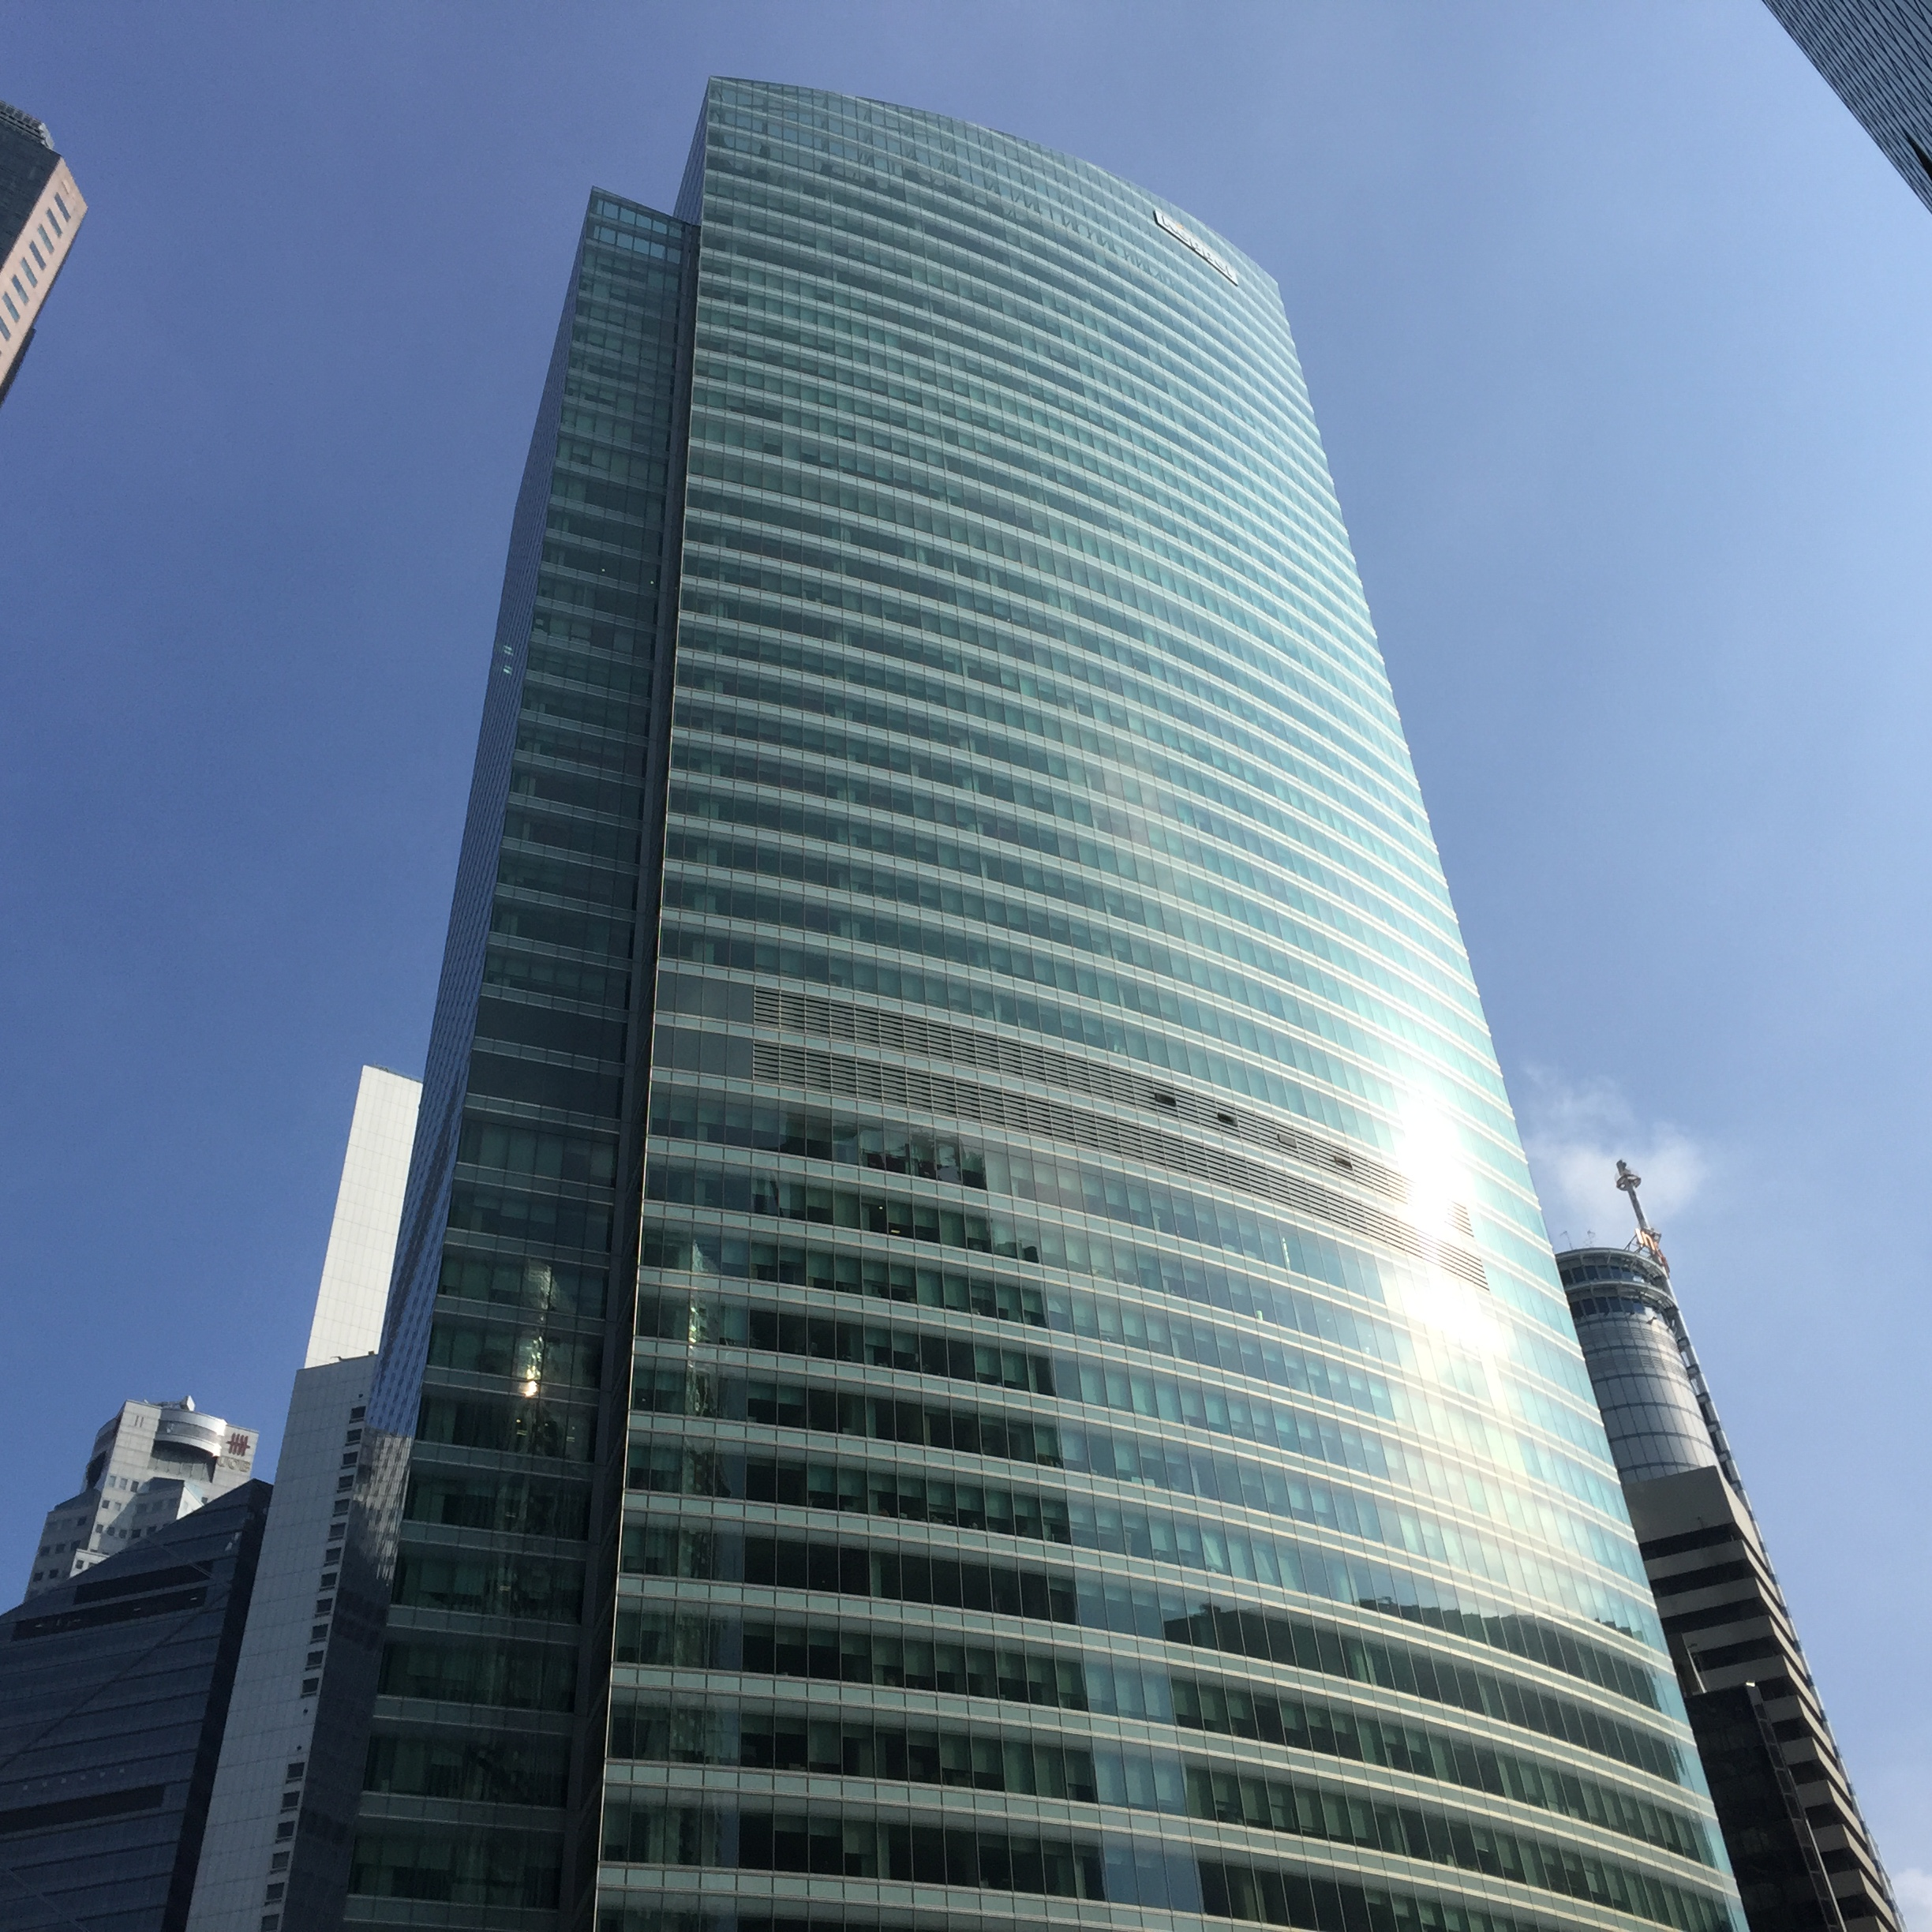 Keppel REIT's Ocean Financial Centre, in which a stake was sold to Allianz Real Estate in 2018. (Photo: REITsWeek)